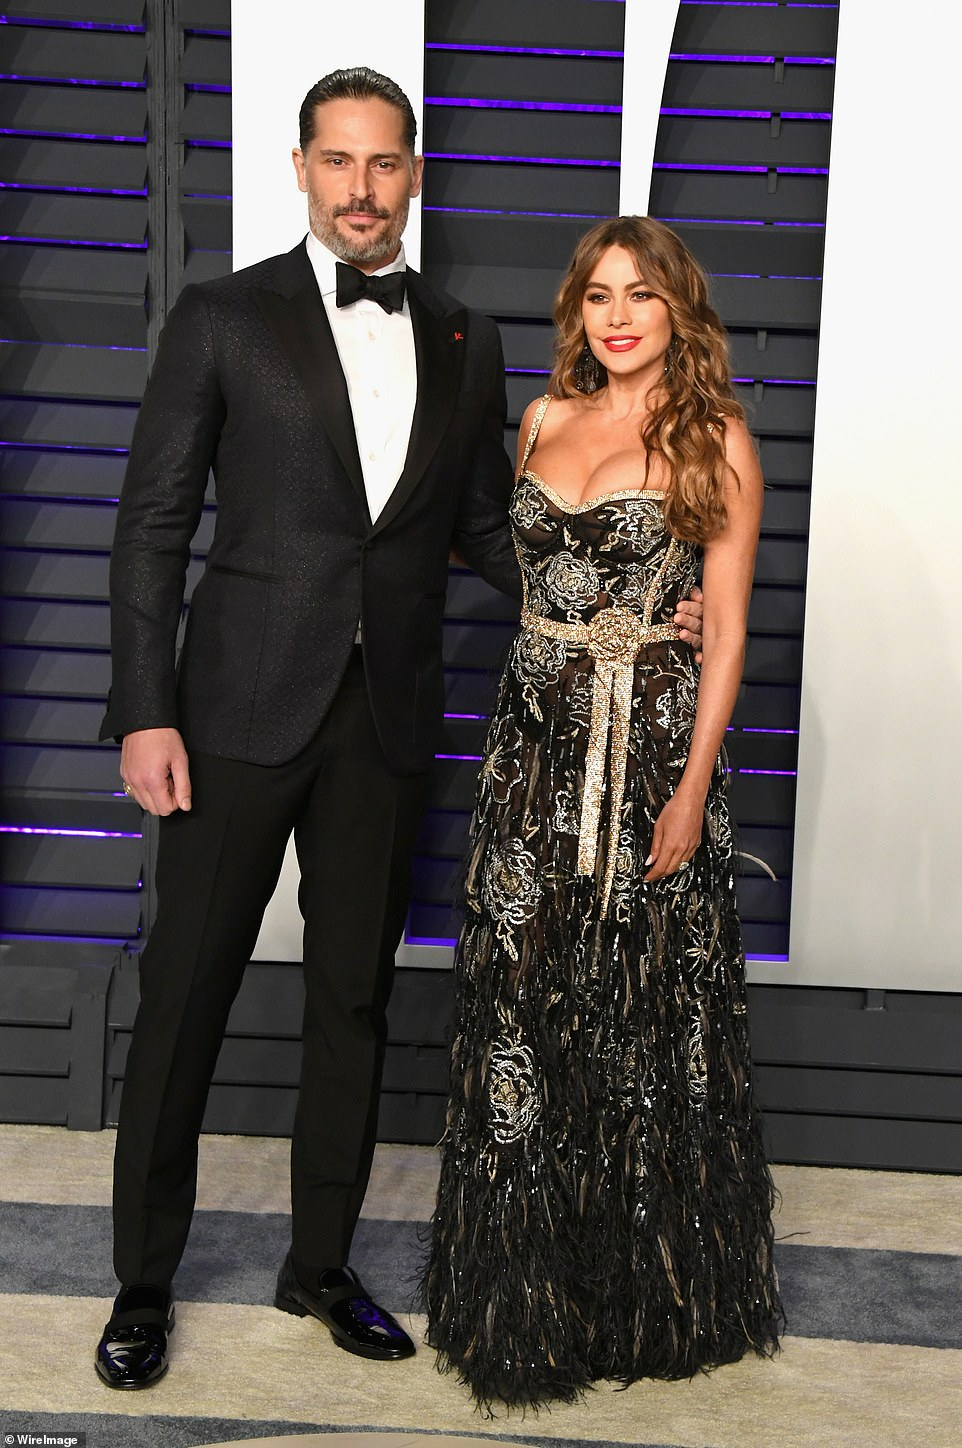 Flawless! The Modern Family star, 46, was joined by husband Joe Manganiello, 42